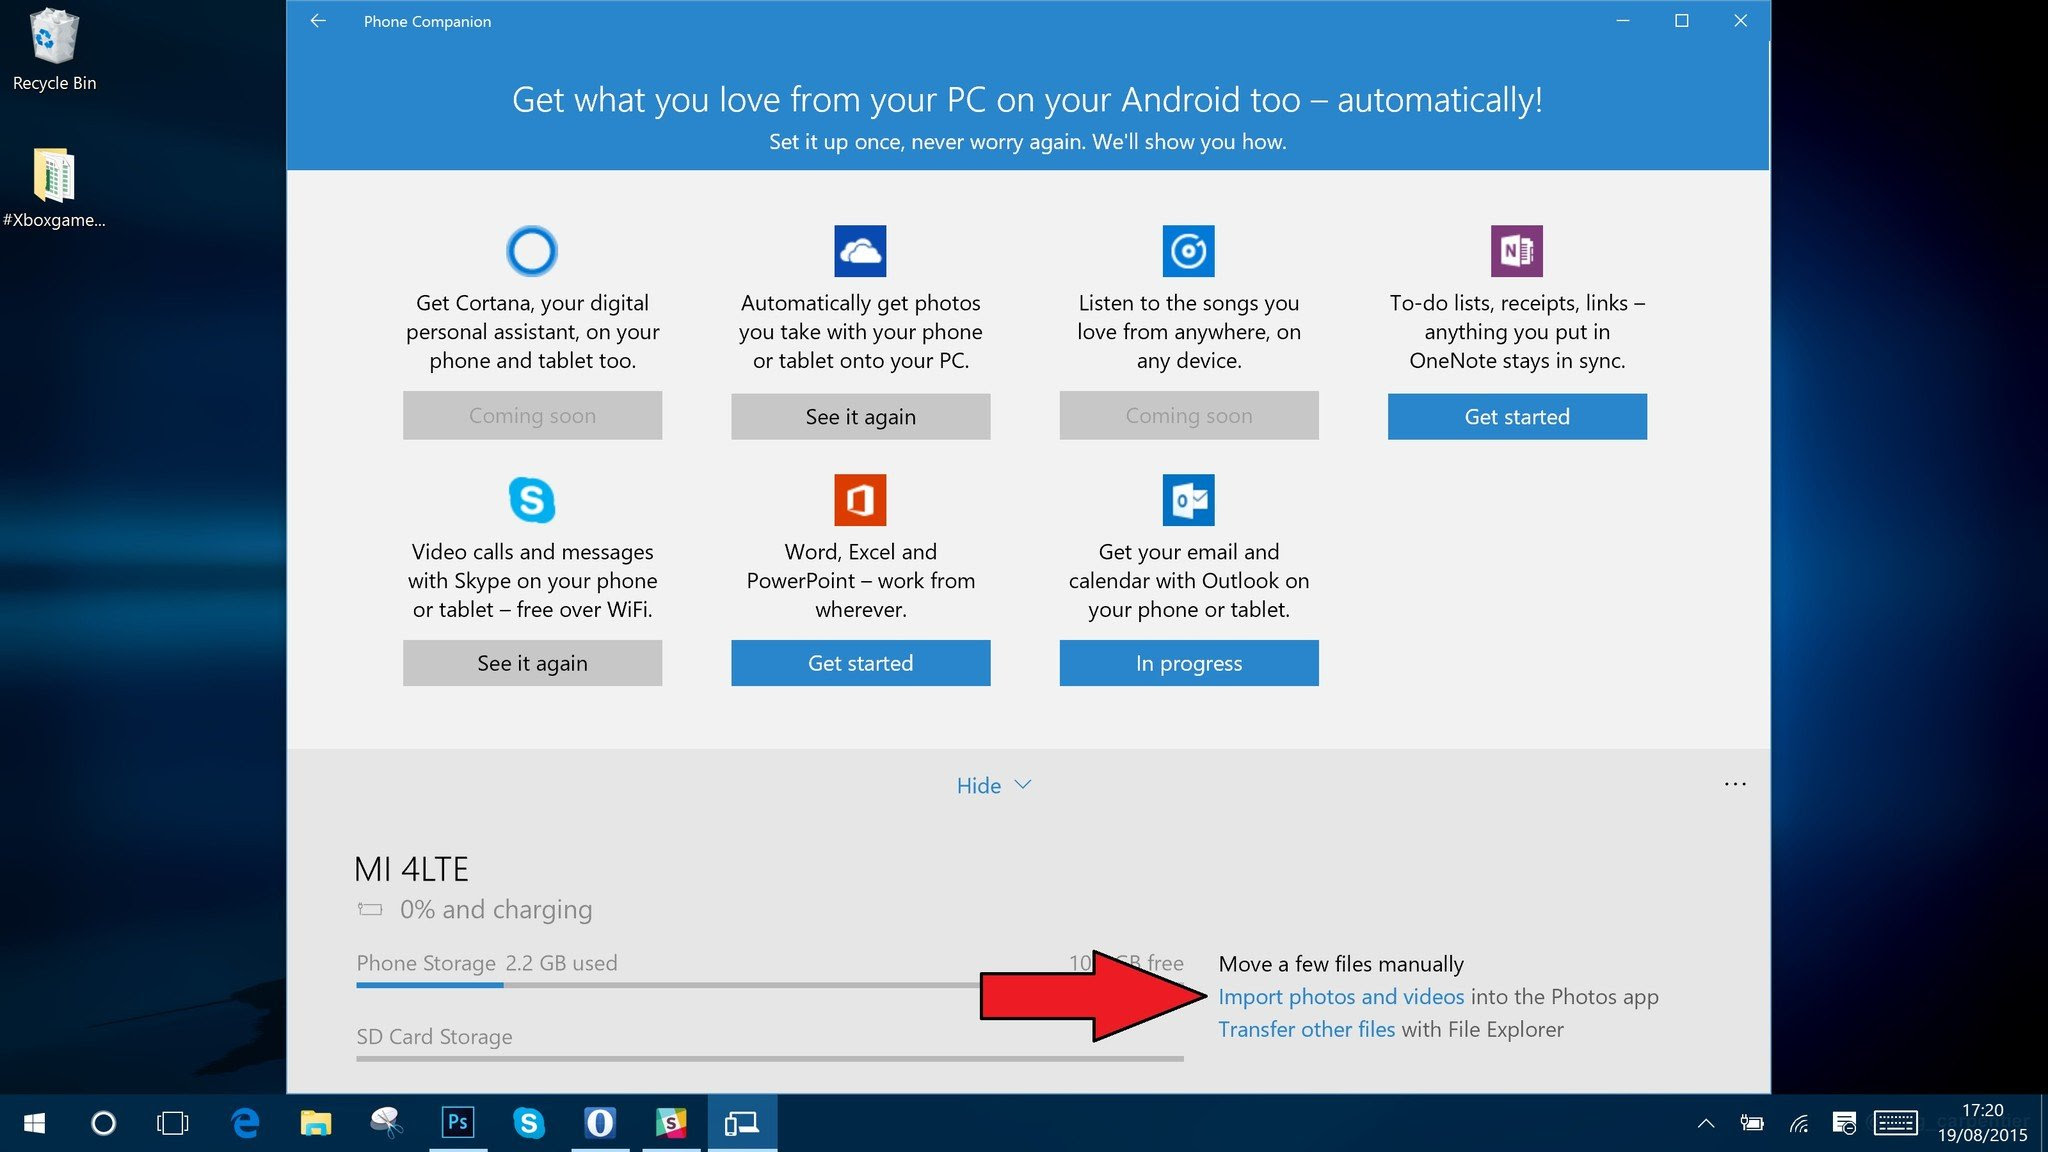 Windows 10 phones at t 2015 - Plug Your Android Phone In To Your Windows 10 Machine Using The Regular Microusb Cable If The Phone Companion App Doesn T Launch Go Into The Start Menu